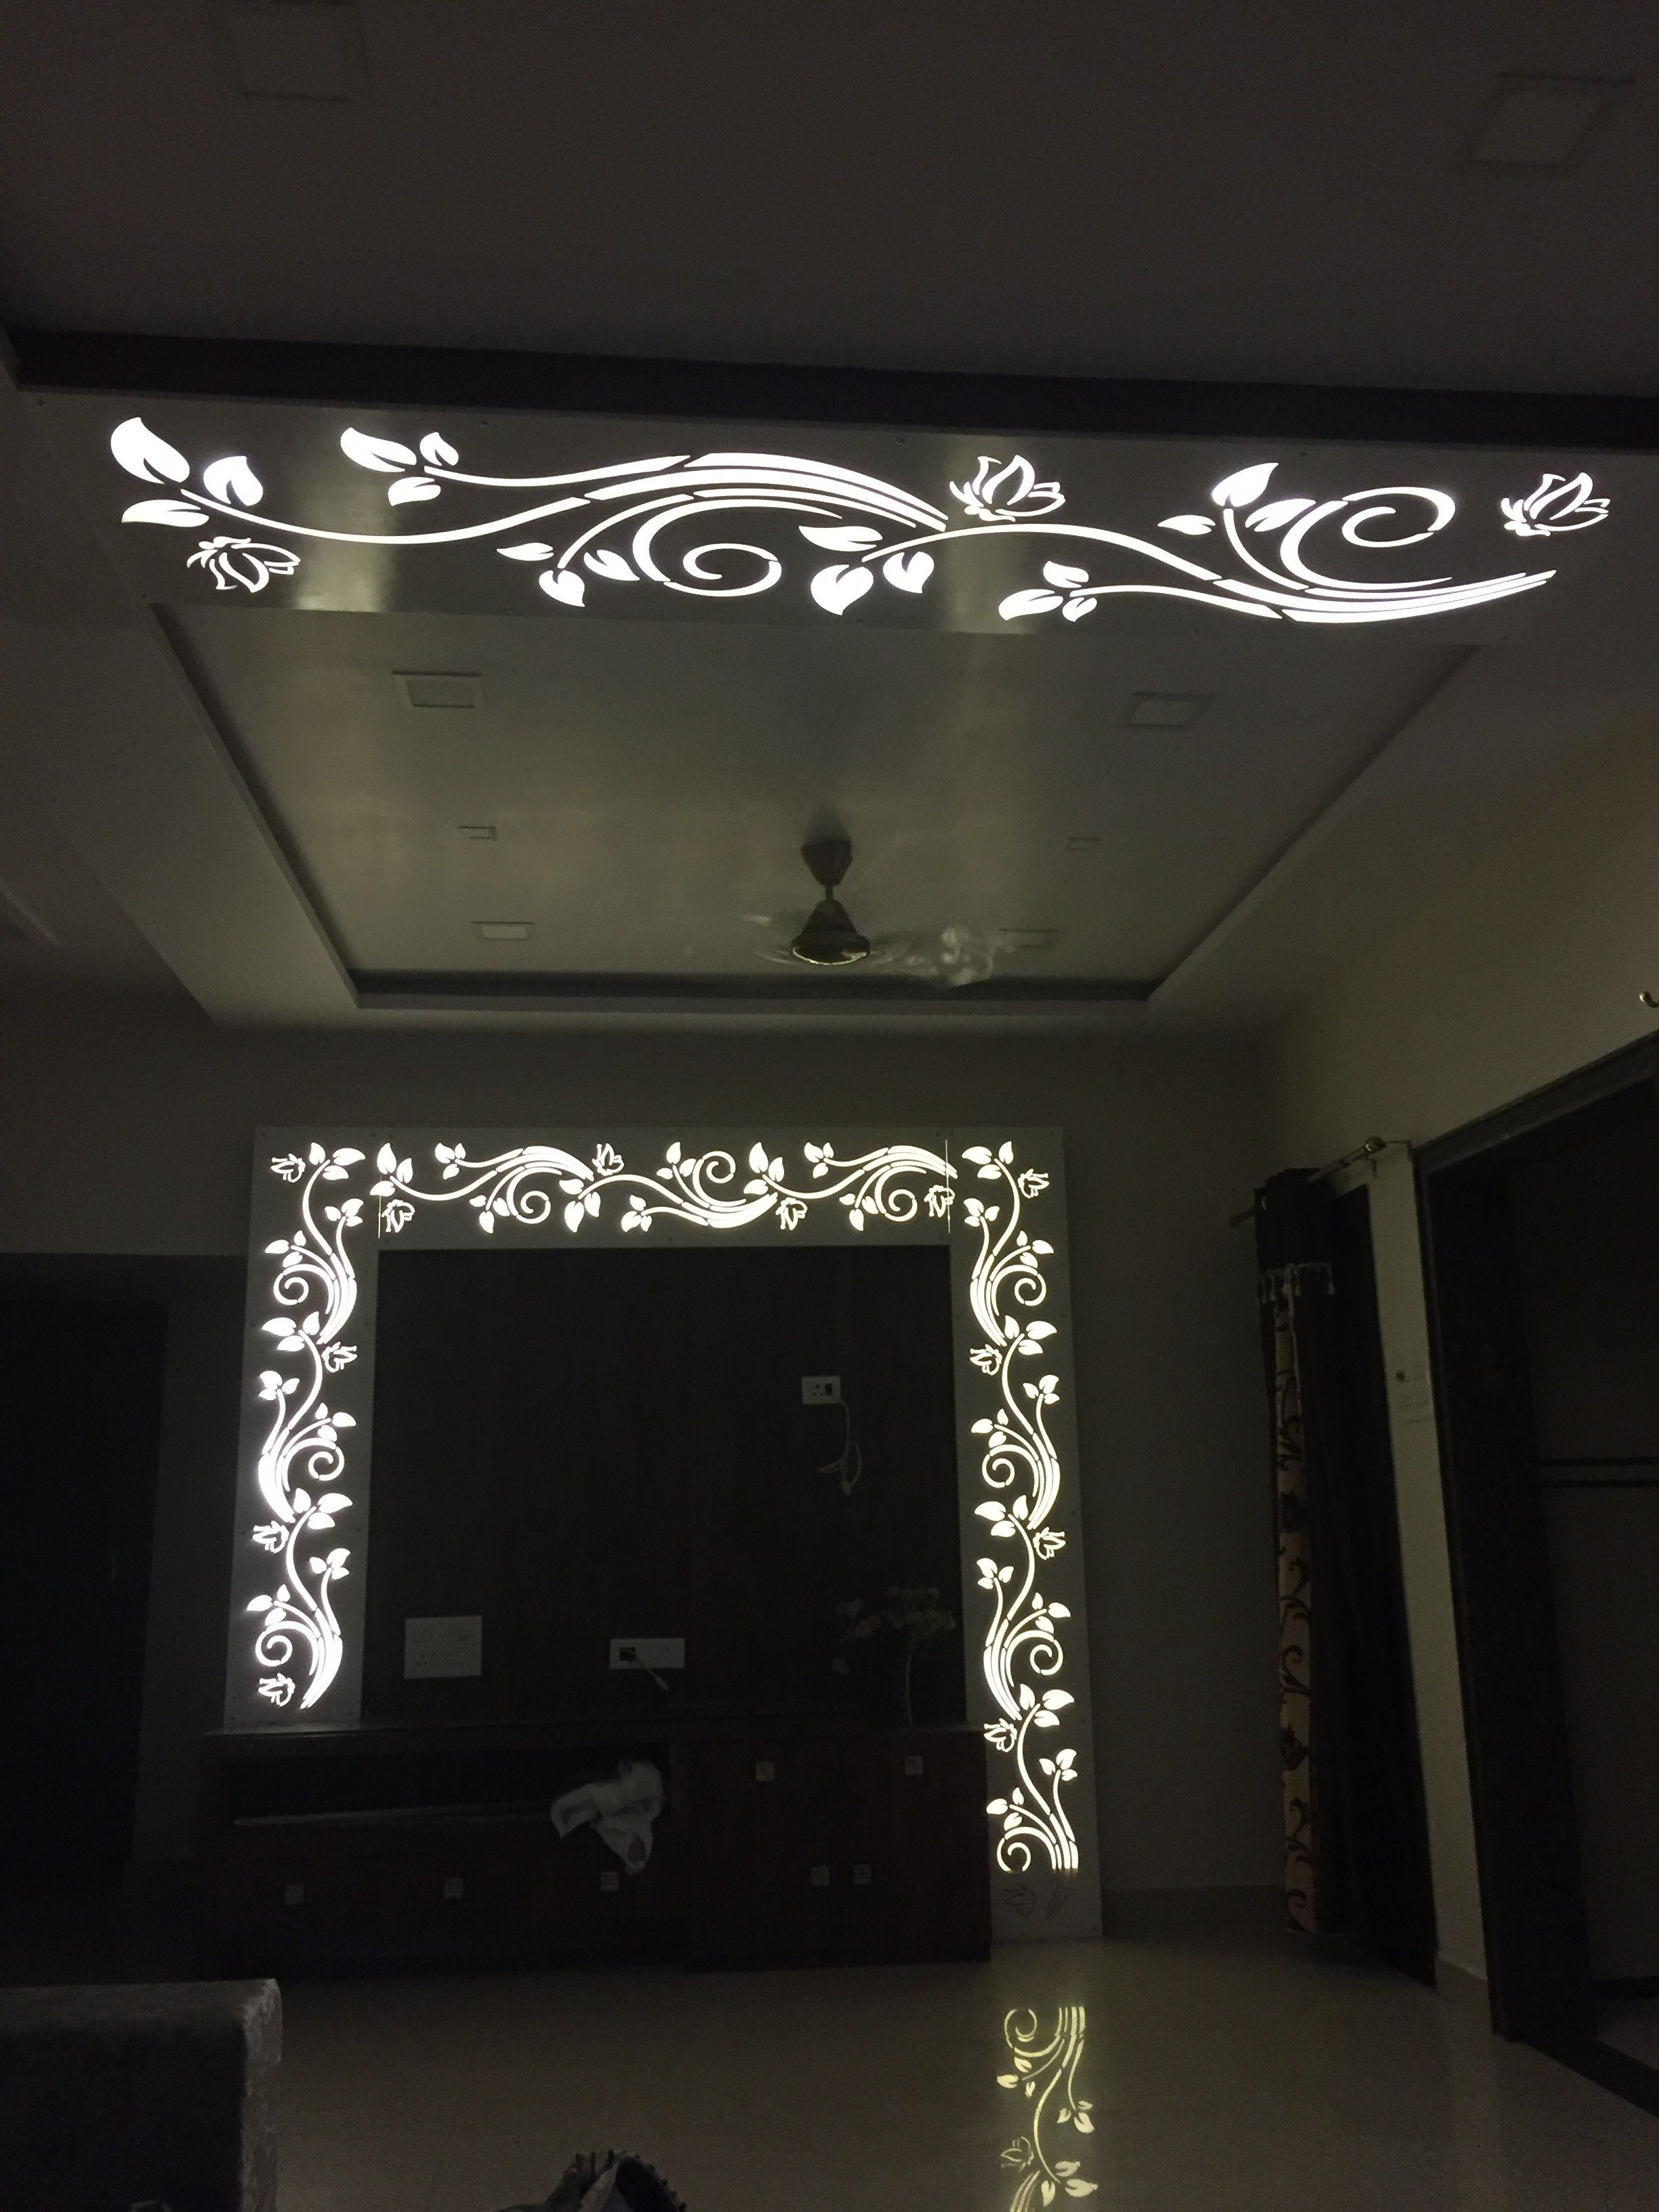 Latest Lcd Panel Design Gallery With Images: Ceiling Design Modern, Ceiling Design Bedroom